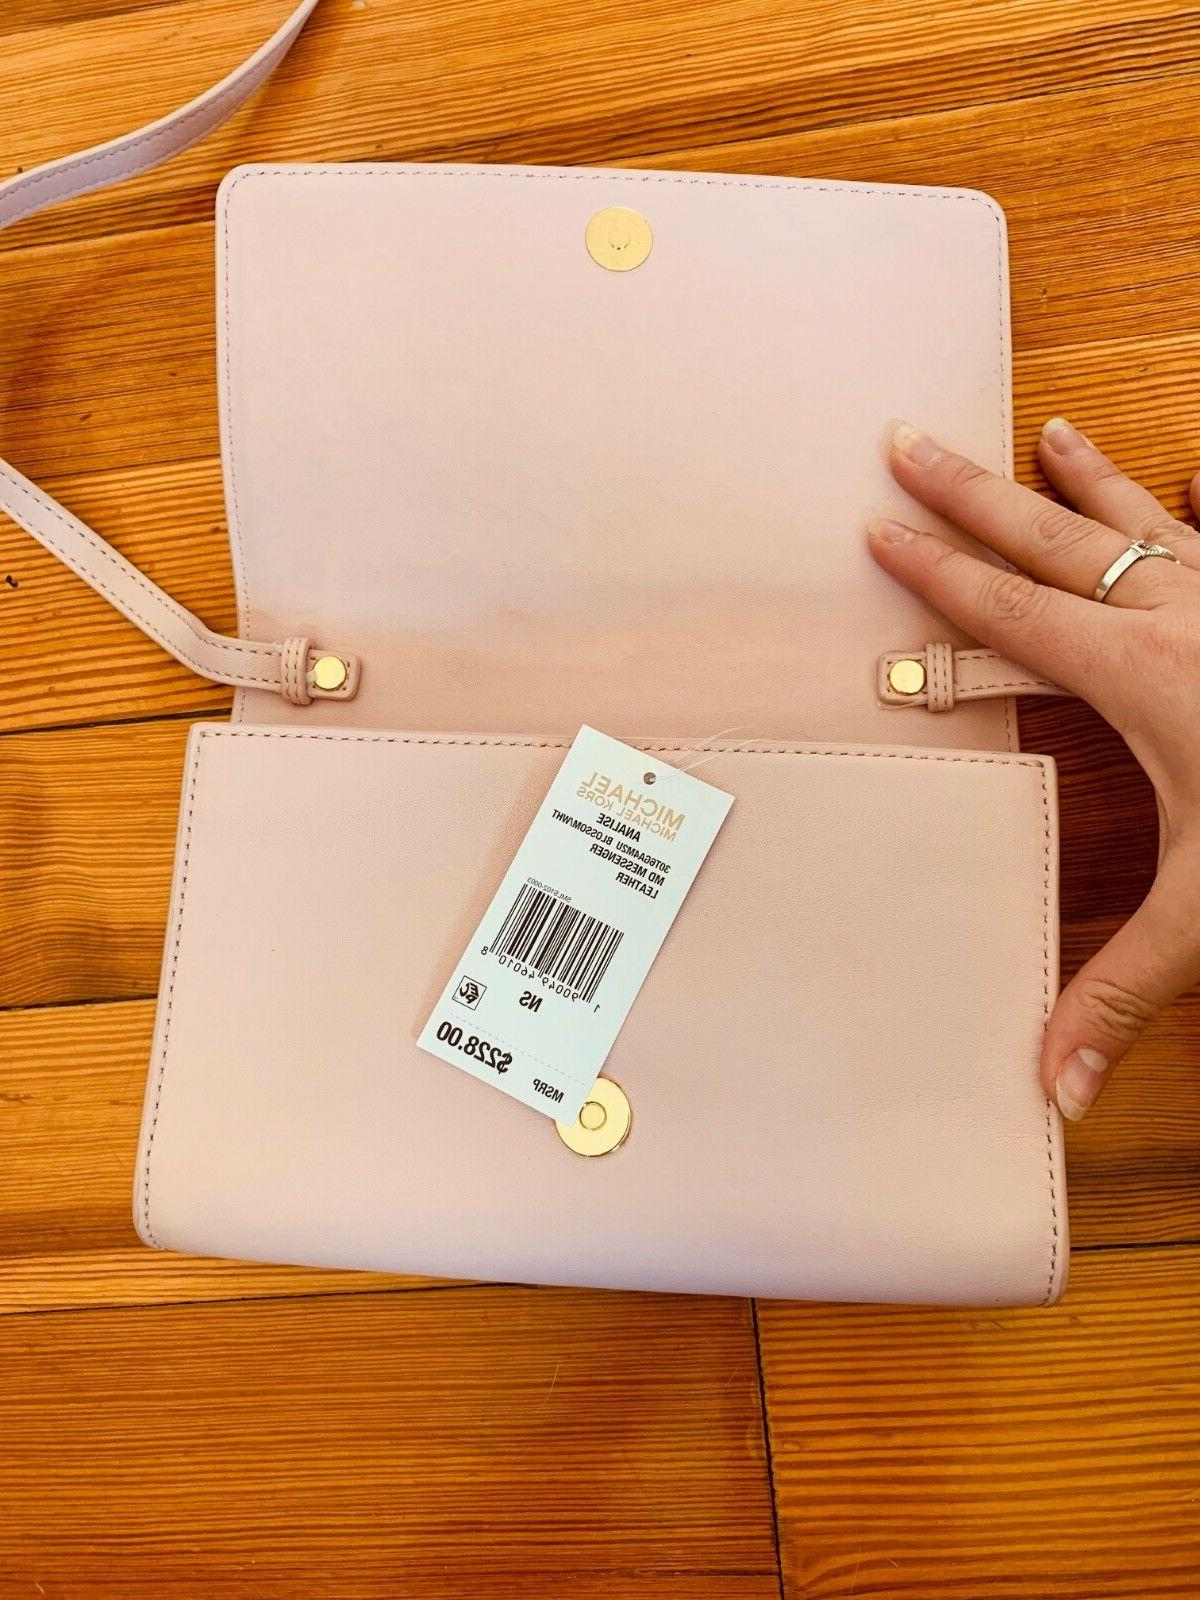 Designer Michael Kors Analise pink and crossbody purse